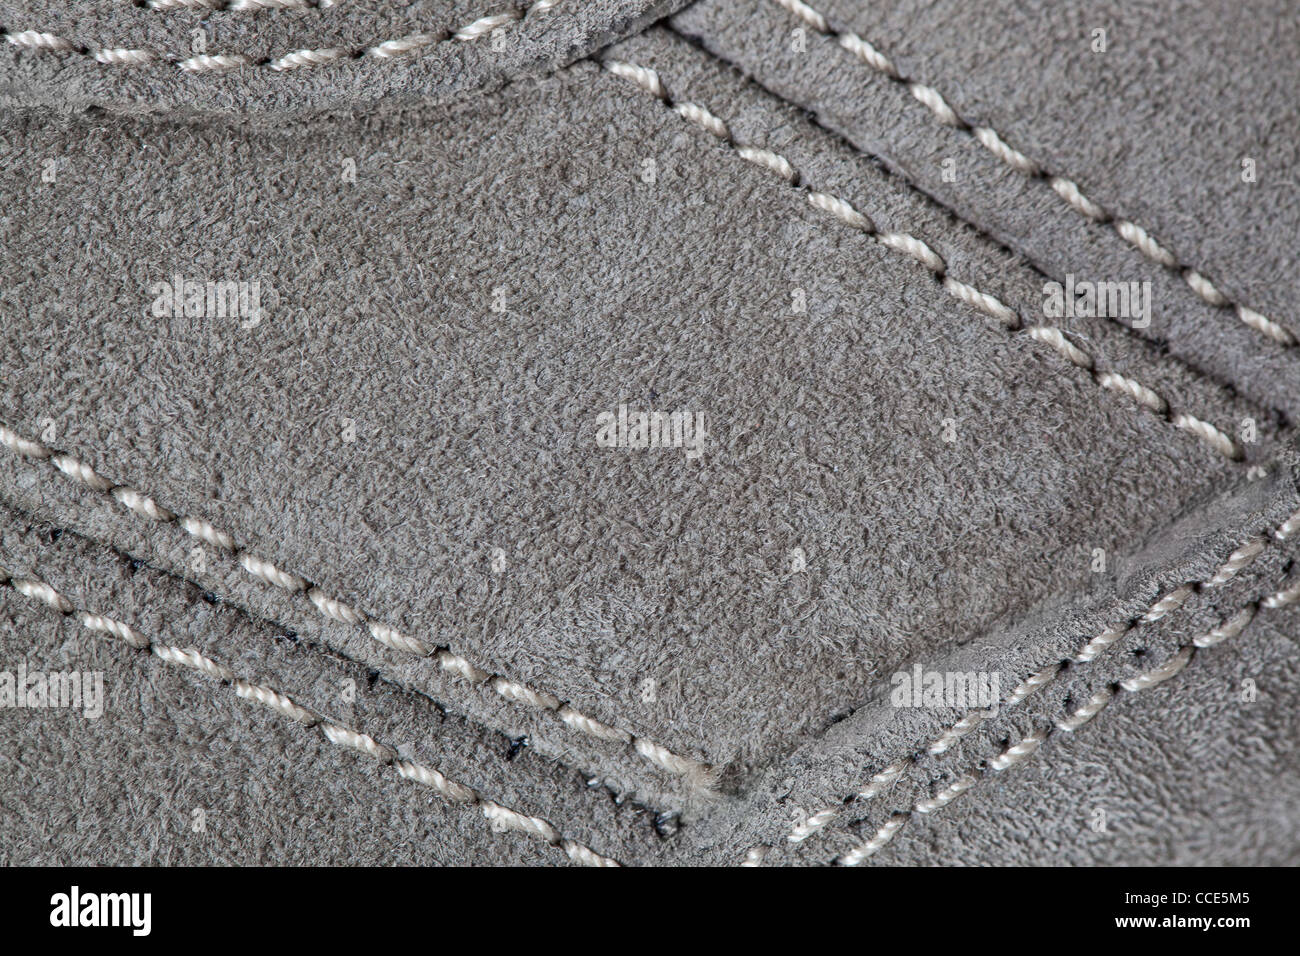 Chamois closeup. Texture or background. - Stock Image